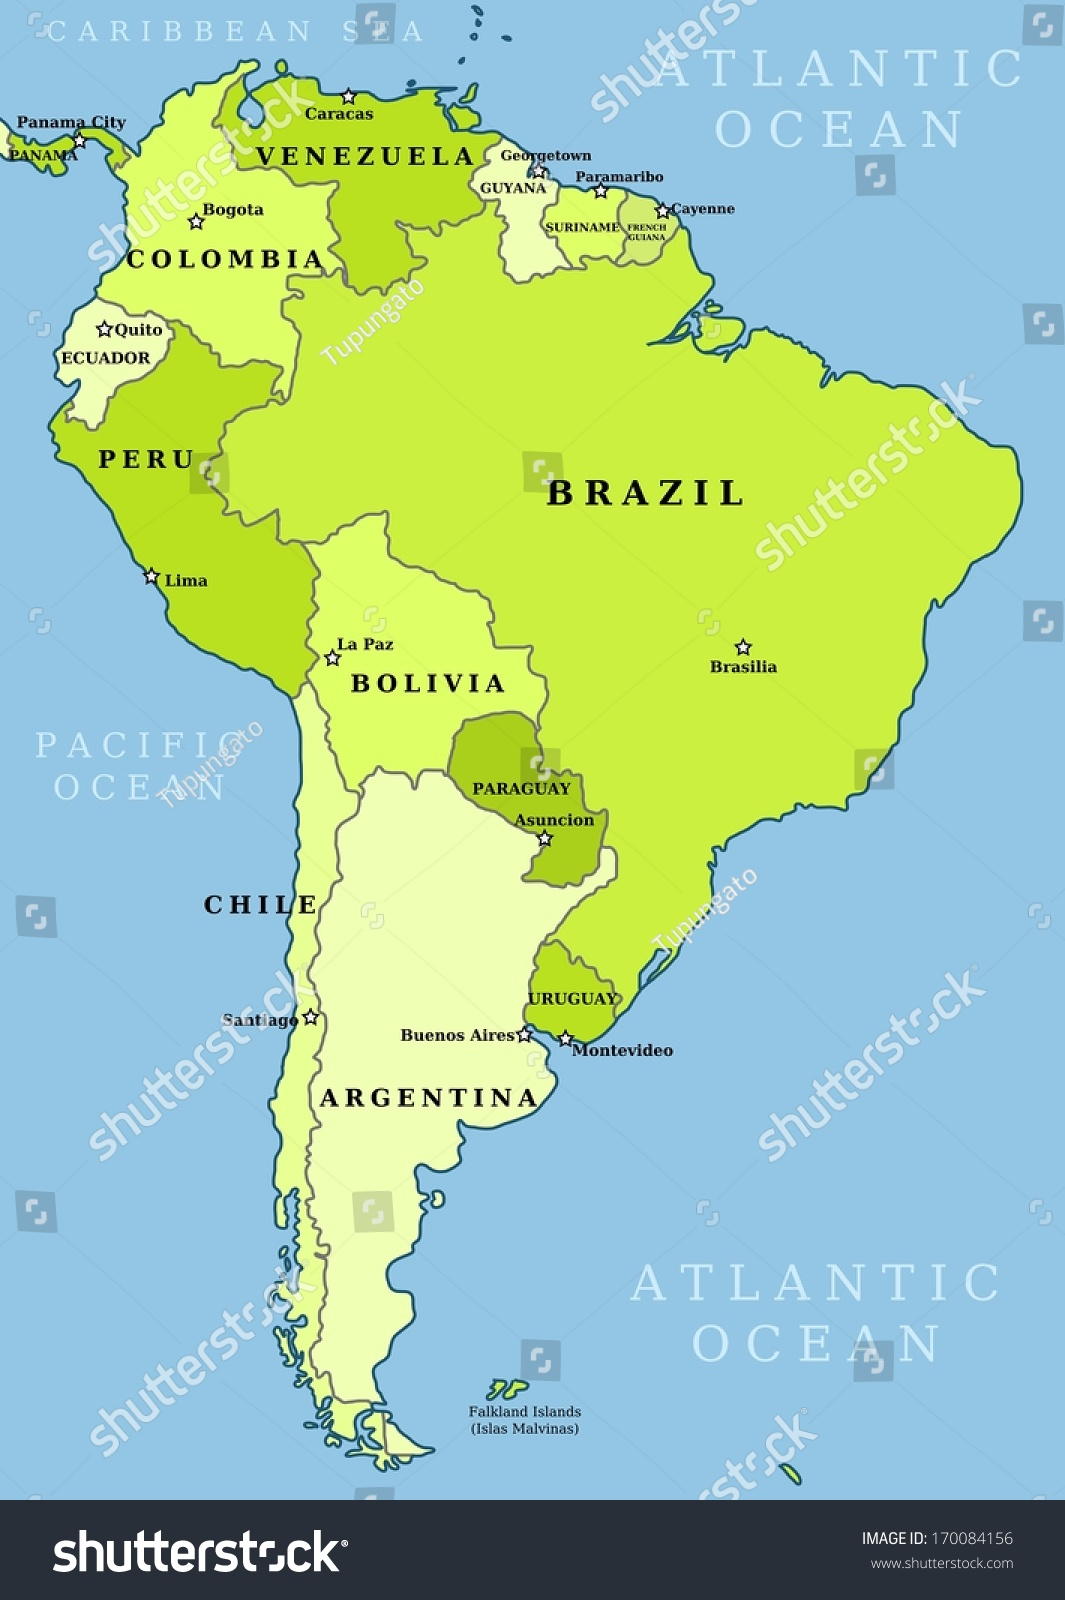 Country Map Of America.Map South America Political Division Countries Stock Illustration